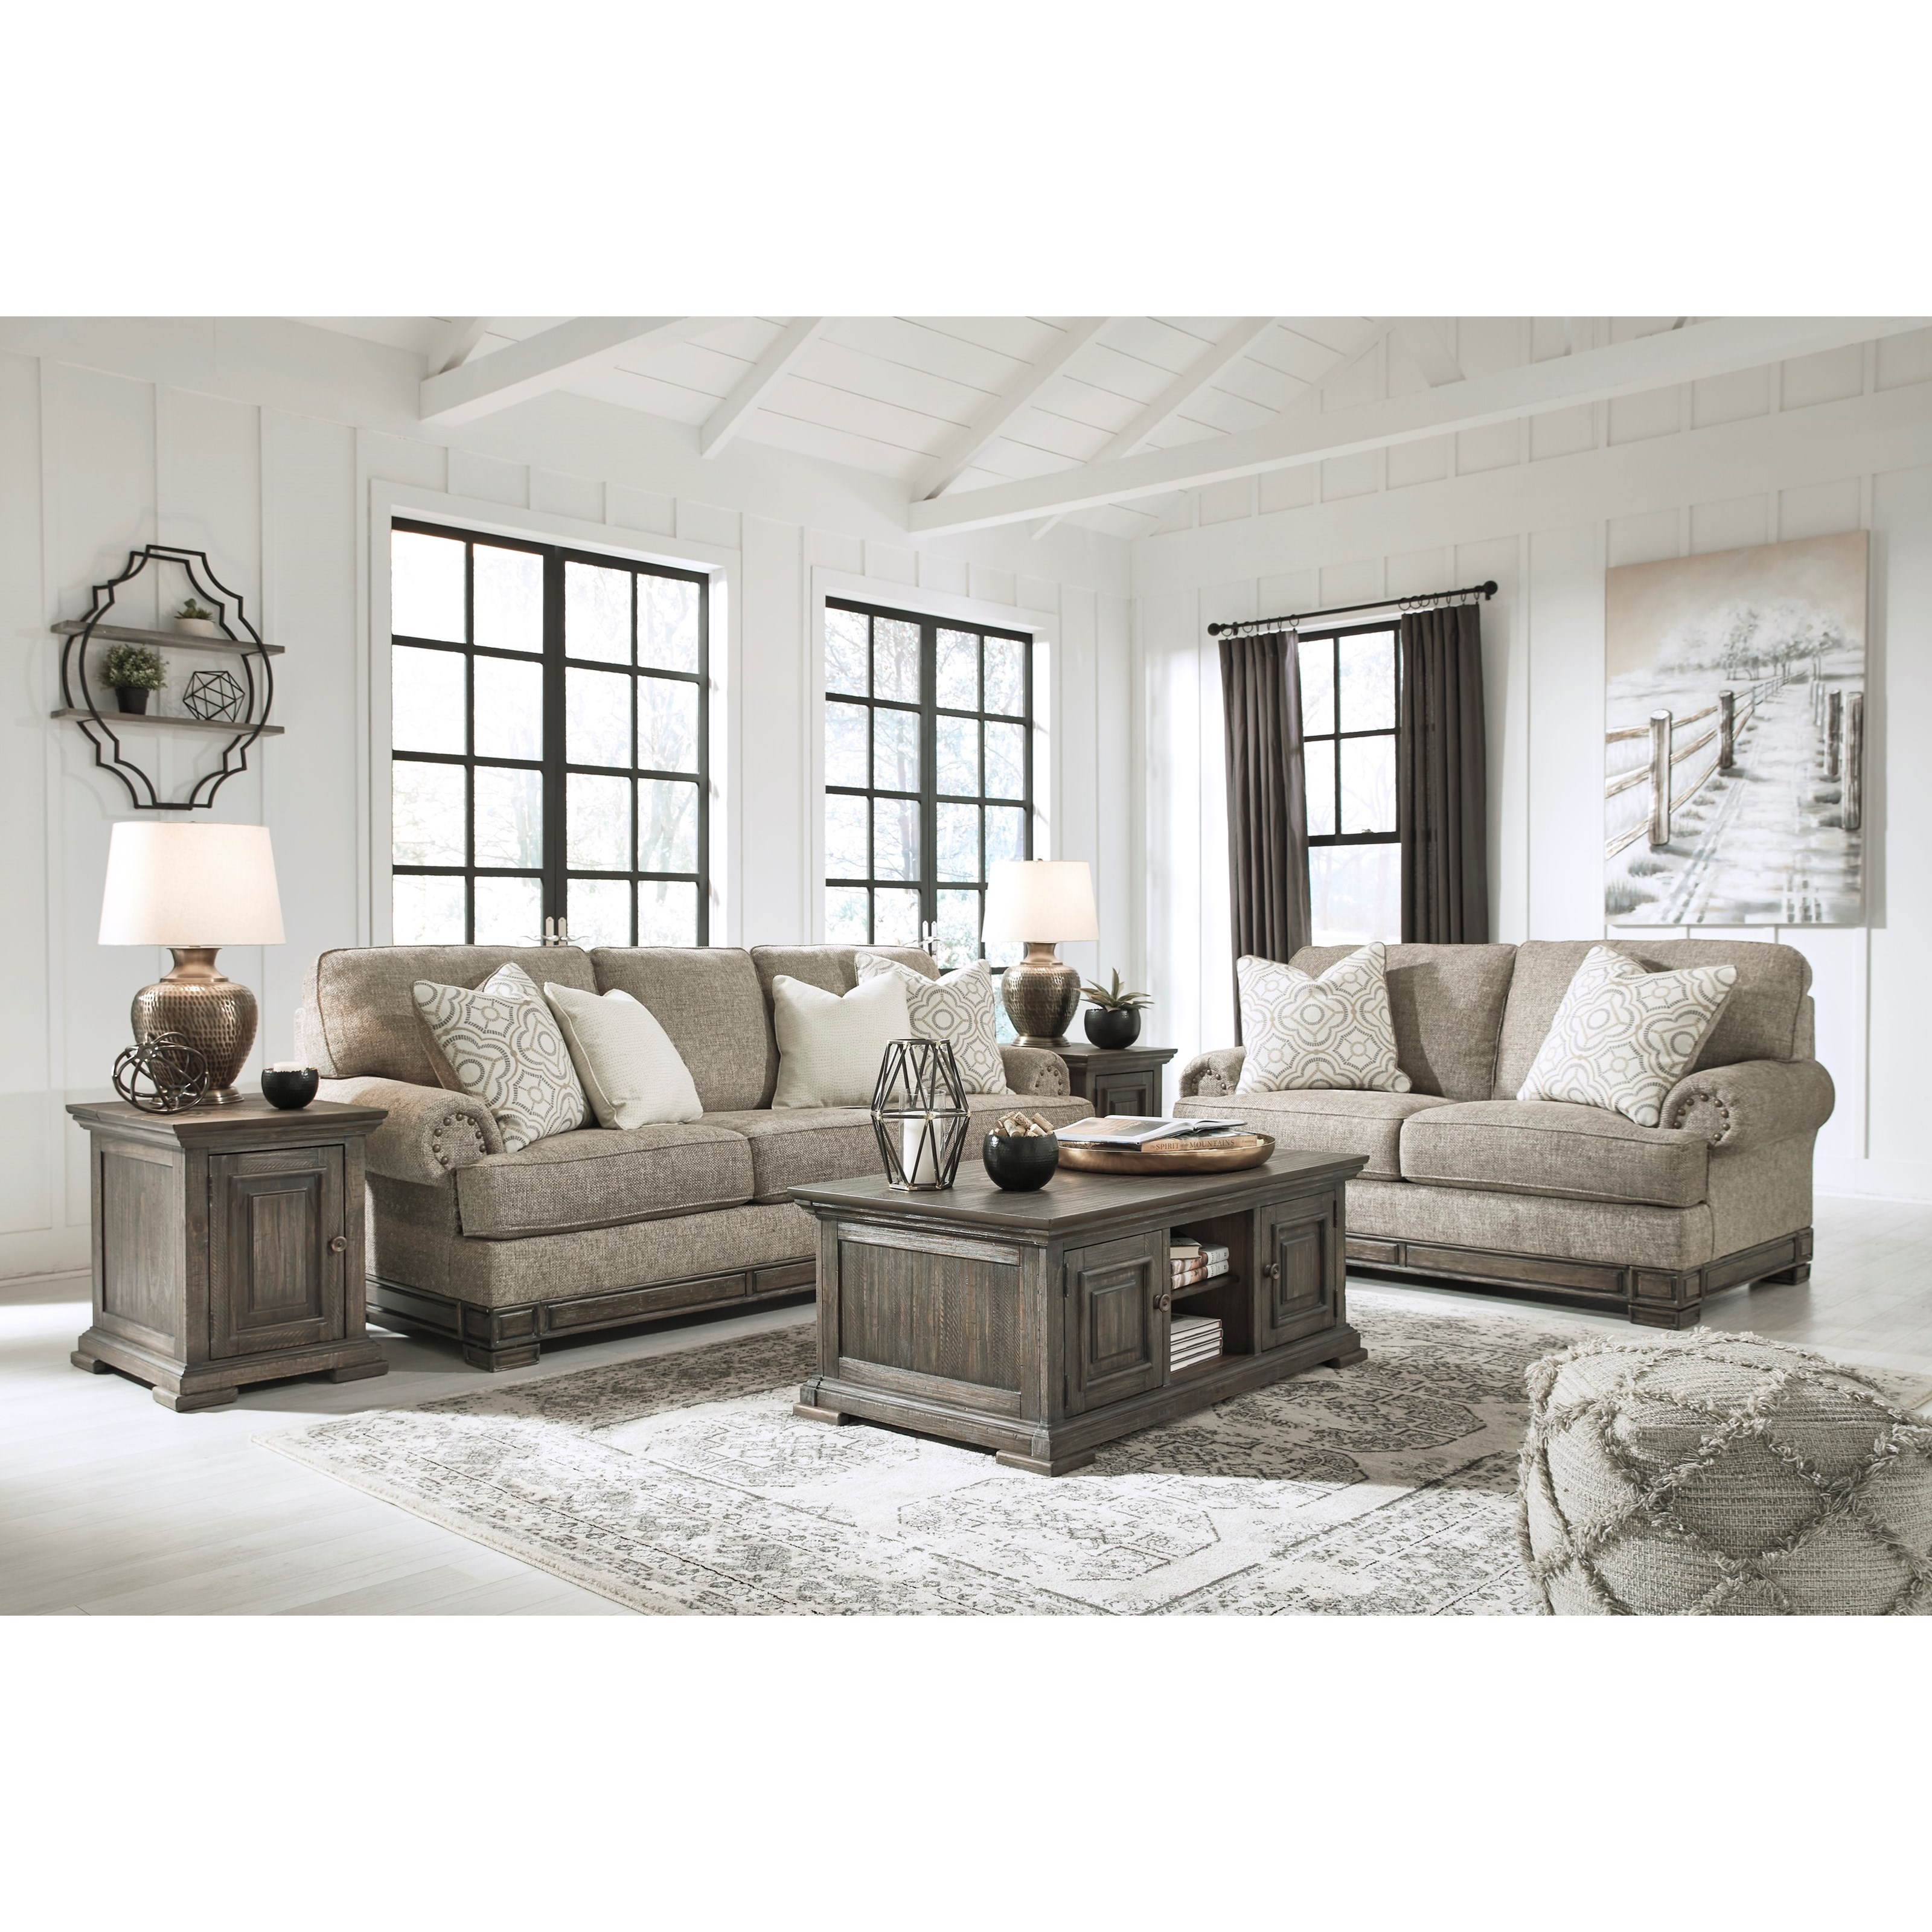 Einsgrove Stationary Living Room Group by Ashley (Signature Design) at Johnny Janosik